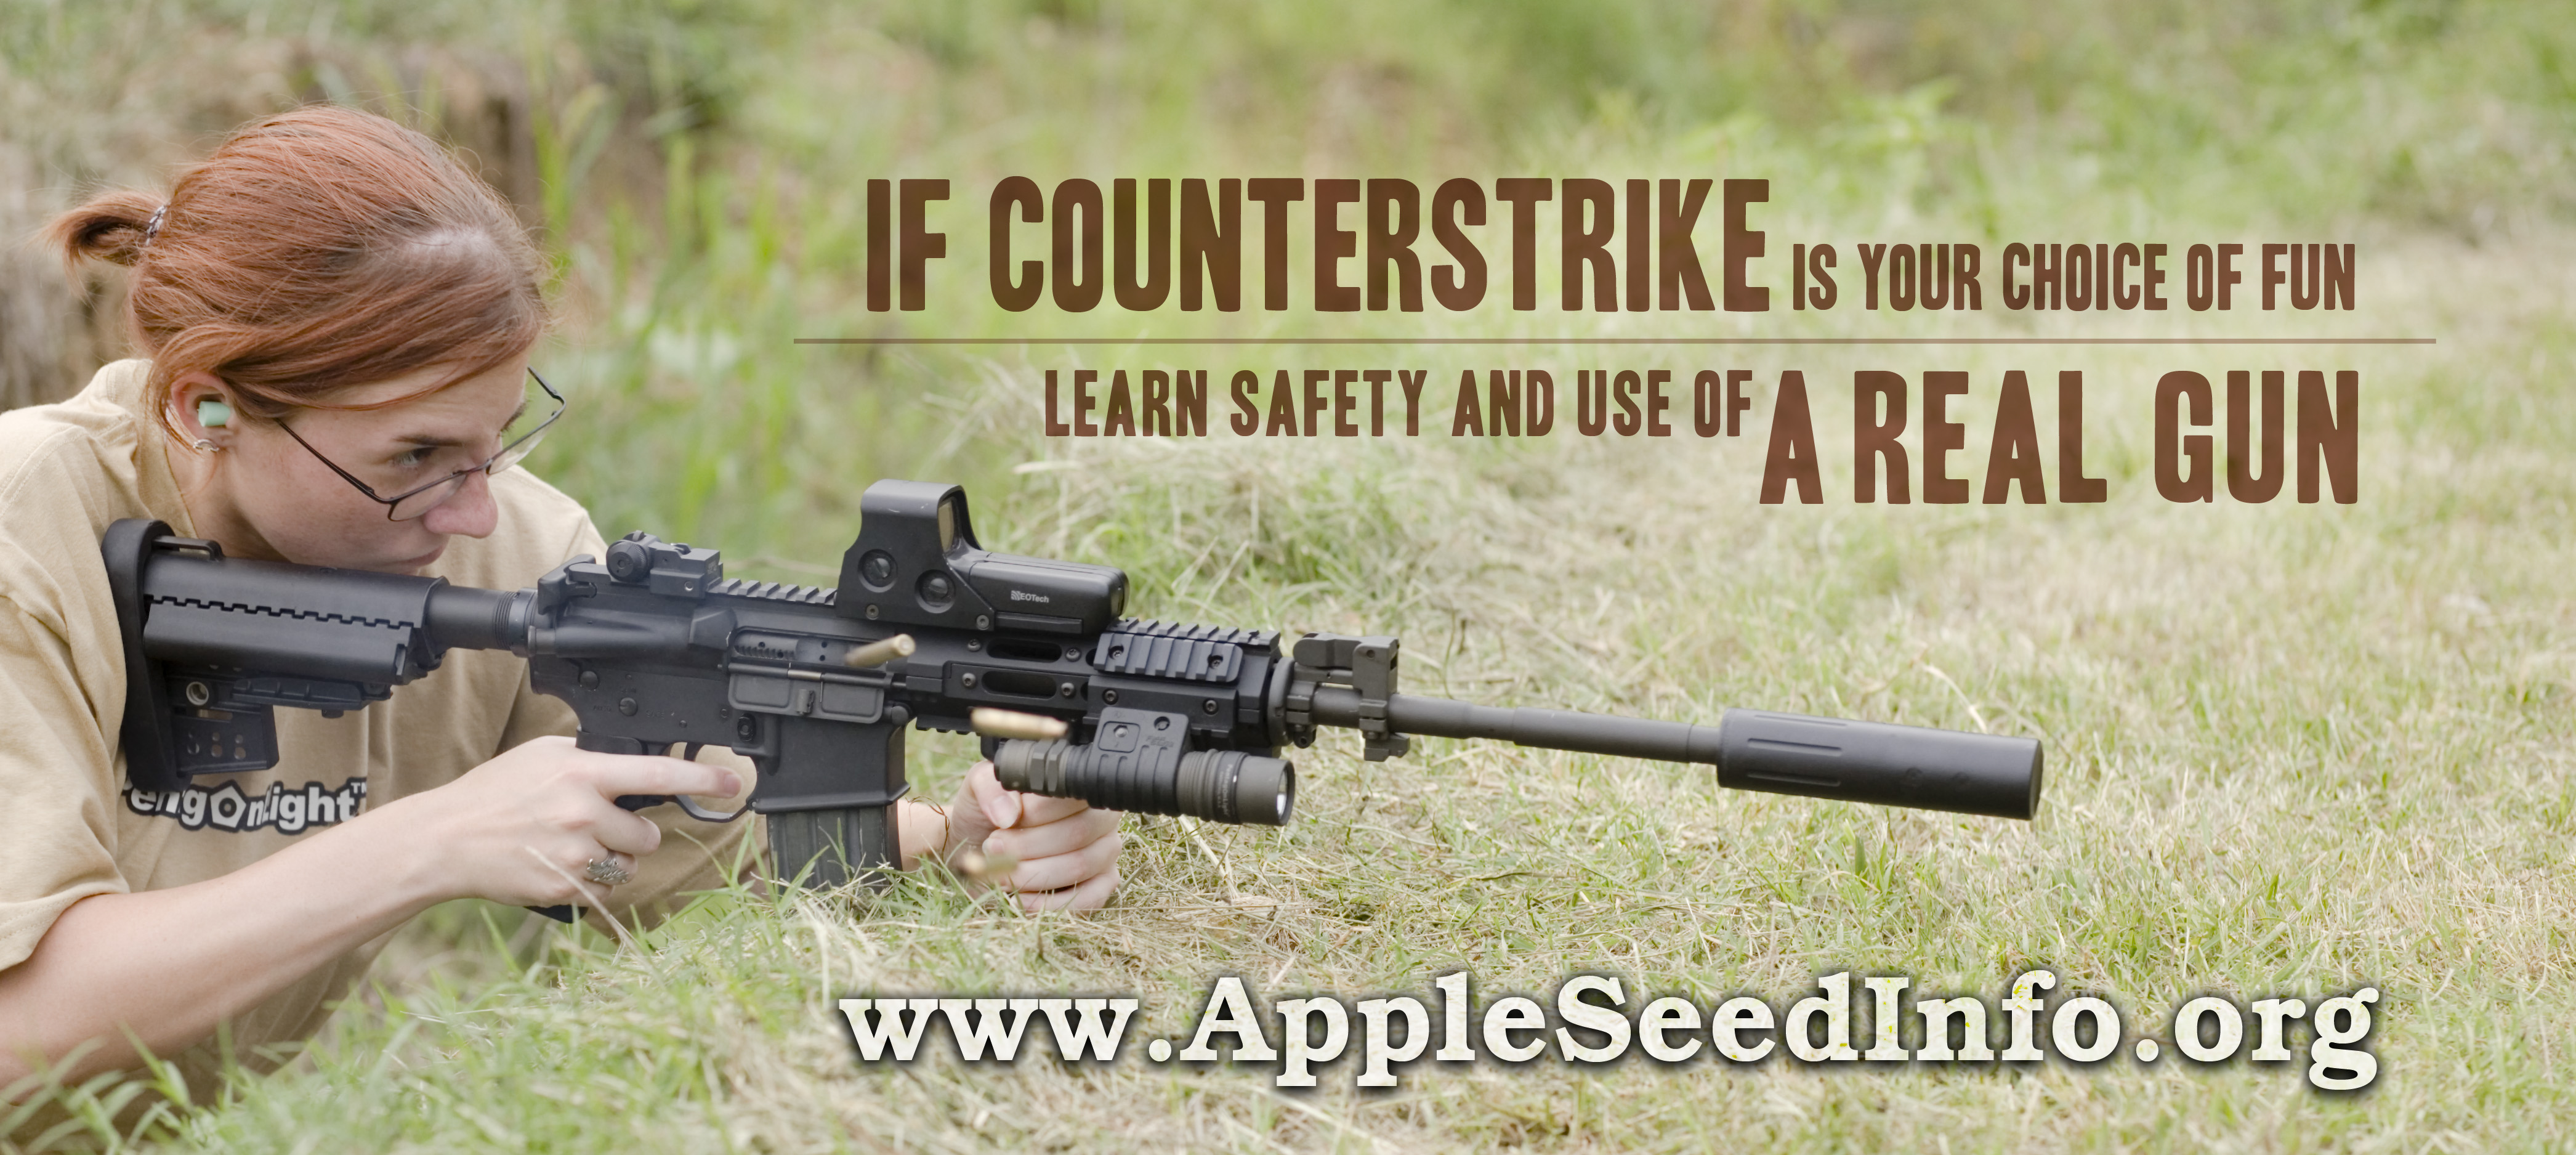 counterstrike5784